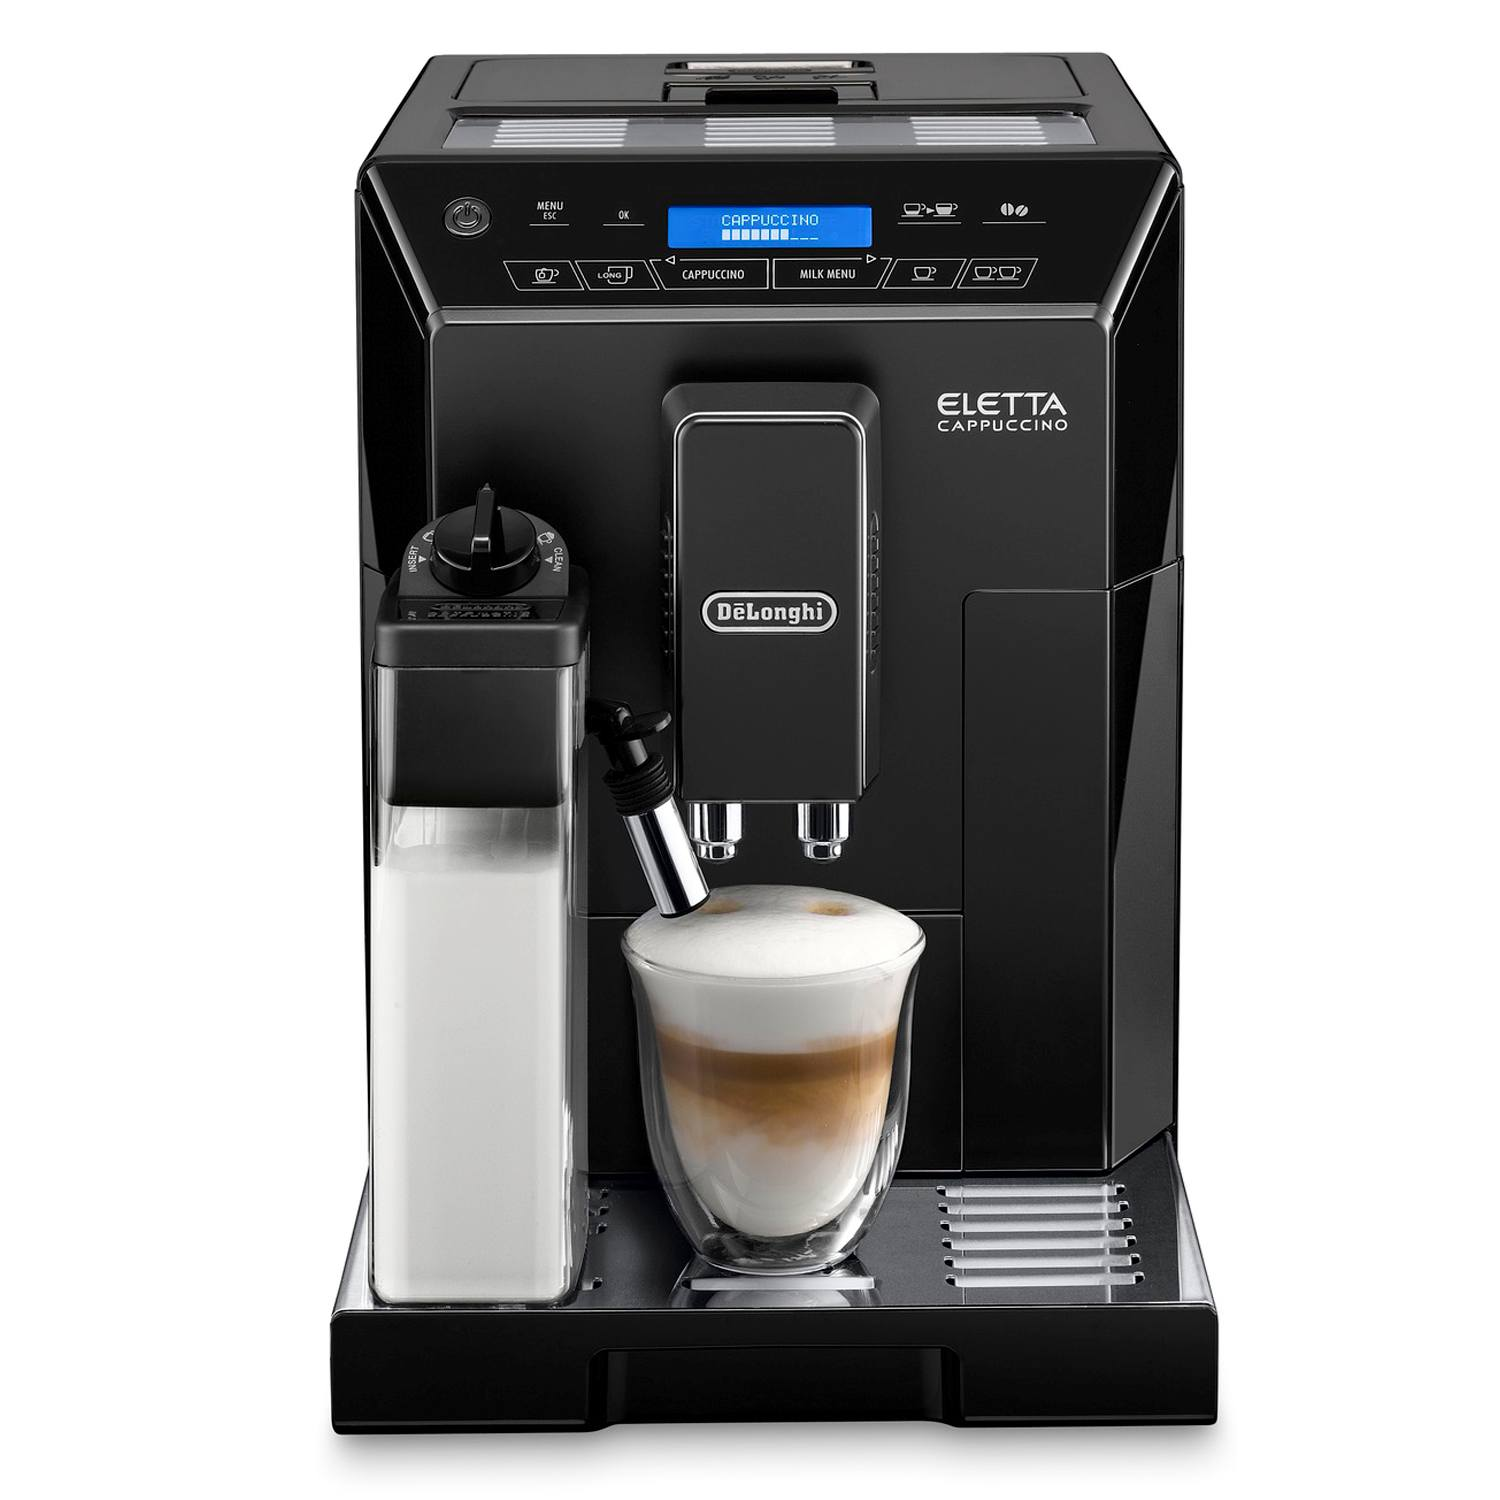 delonghi eletta bean to cup cappuccino coffee machine in black 8004399328341 ebay. Black Bedroom Furniture Sets. Home Design Ideas